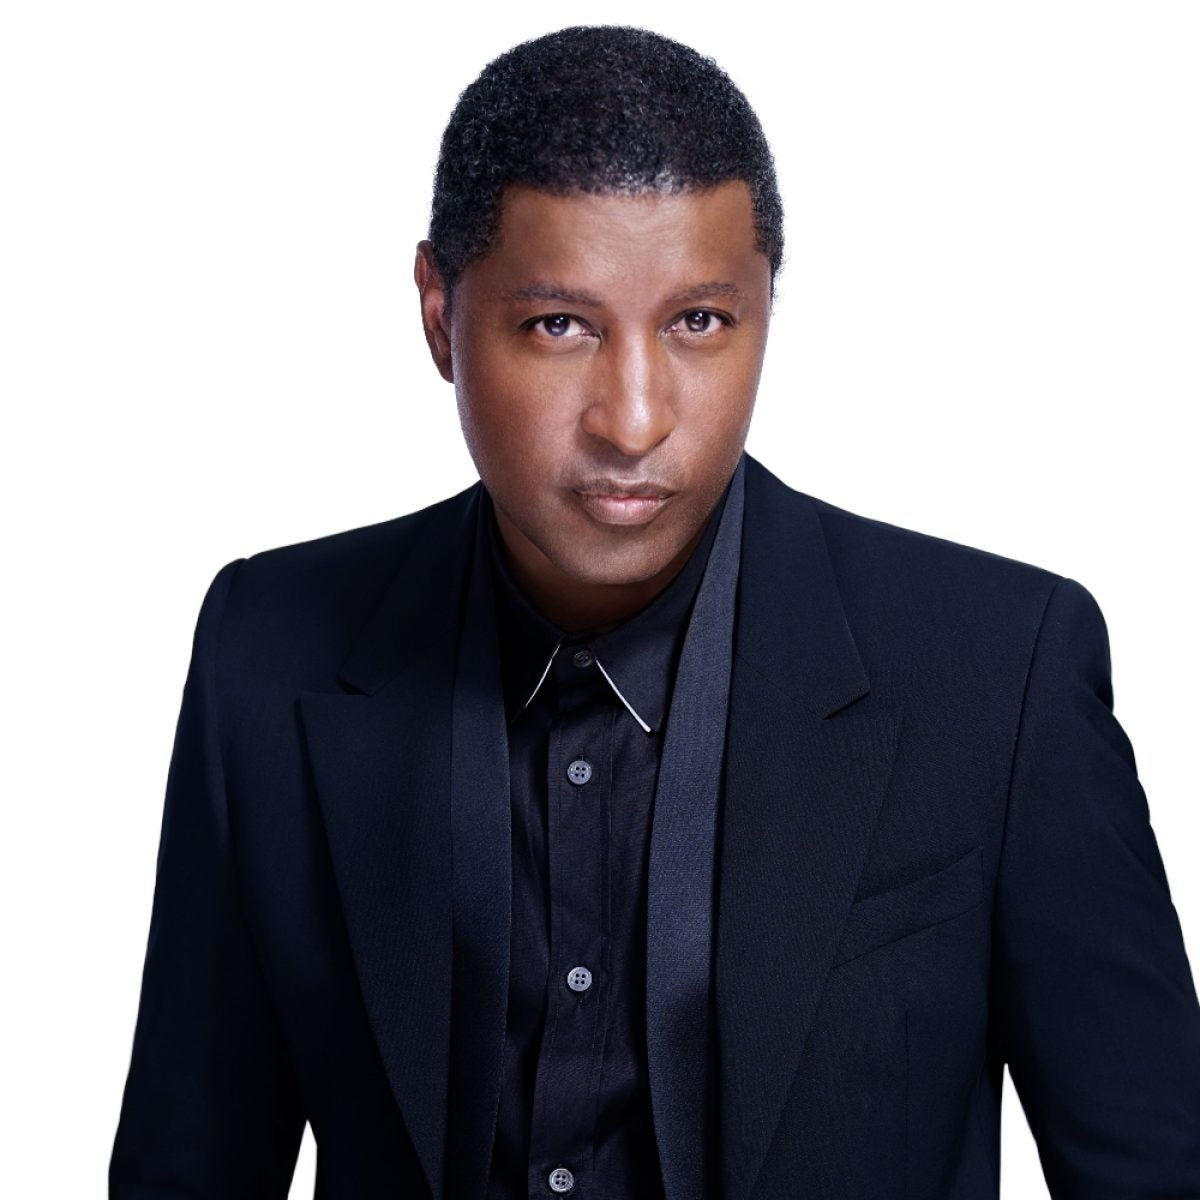 Babyface On His Experience Being A Caregiver For His Mother And How Her Alzheimer's Battle Gave Him New Purpose